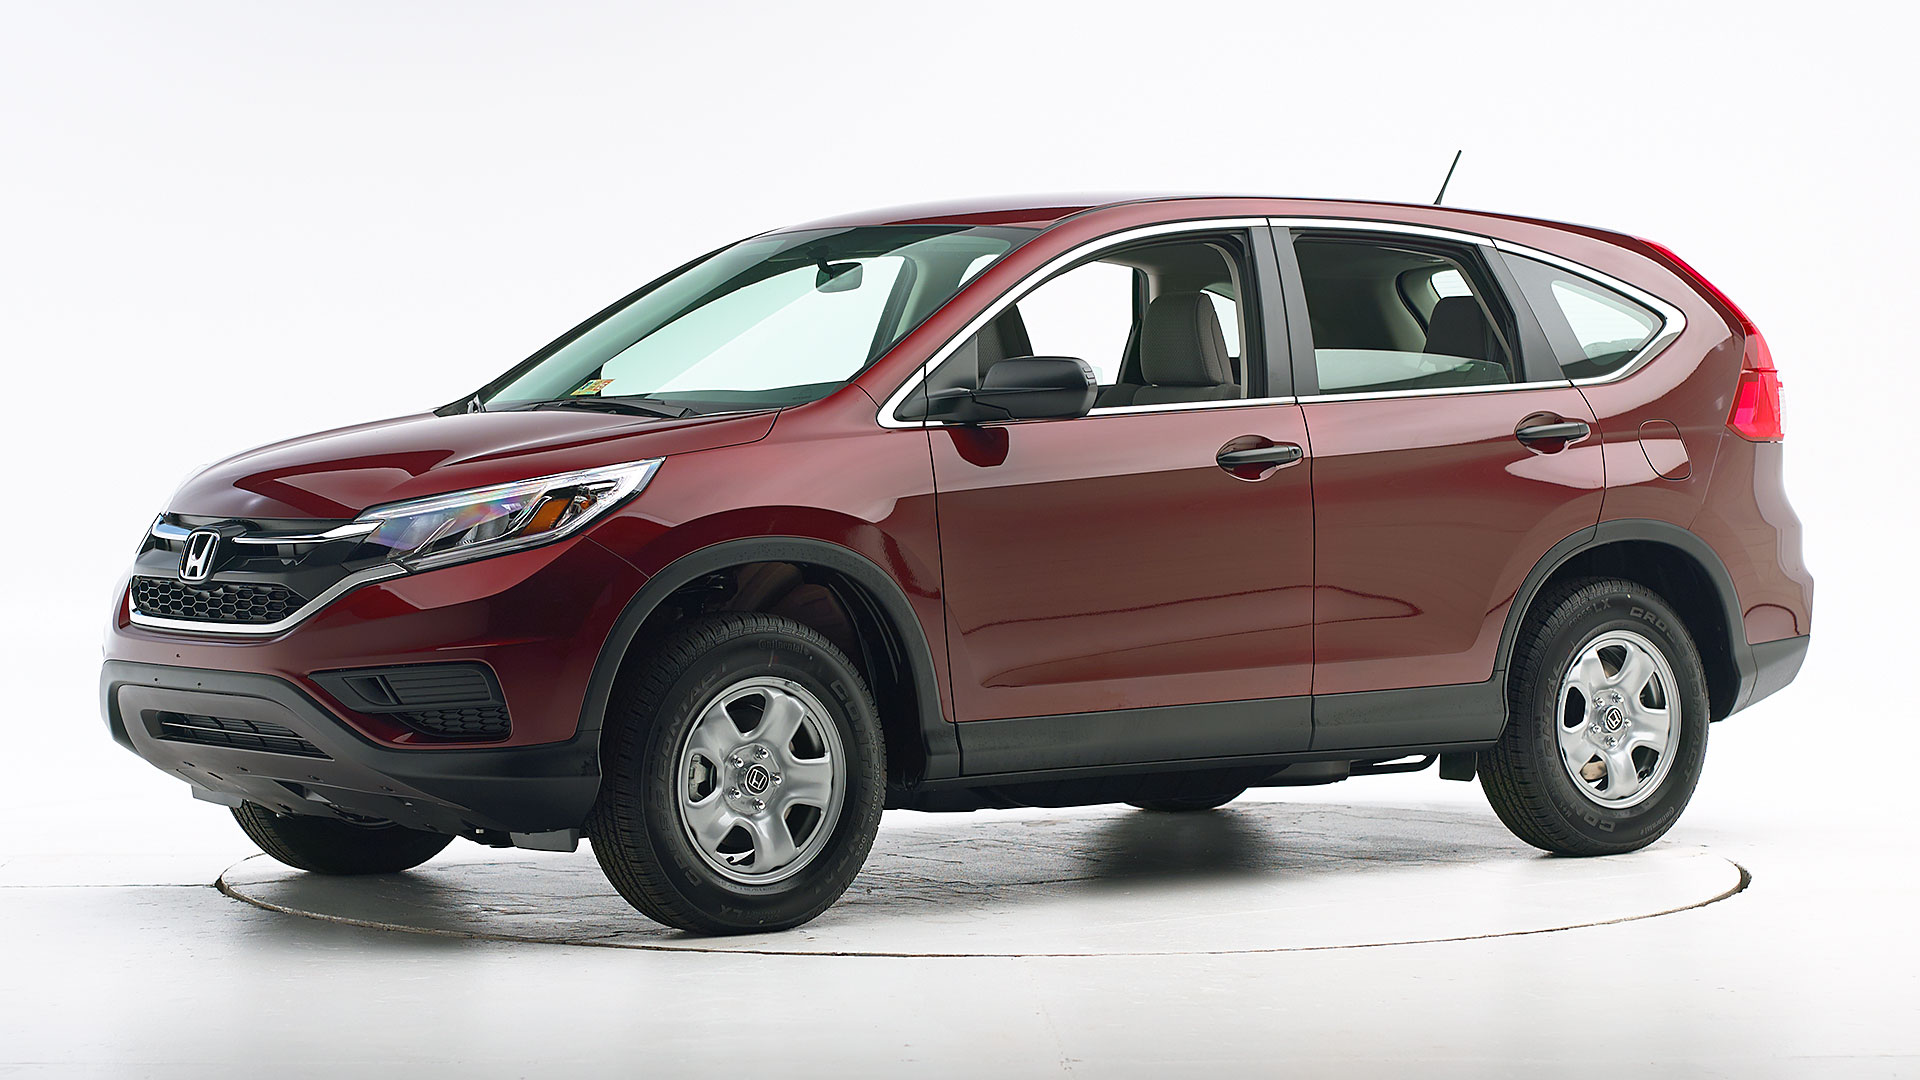 2016 Honda CR-V 4-door SUV